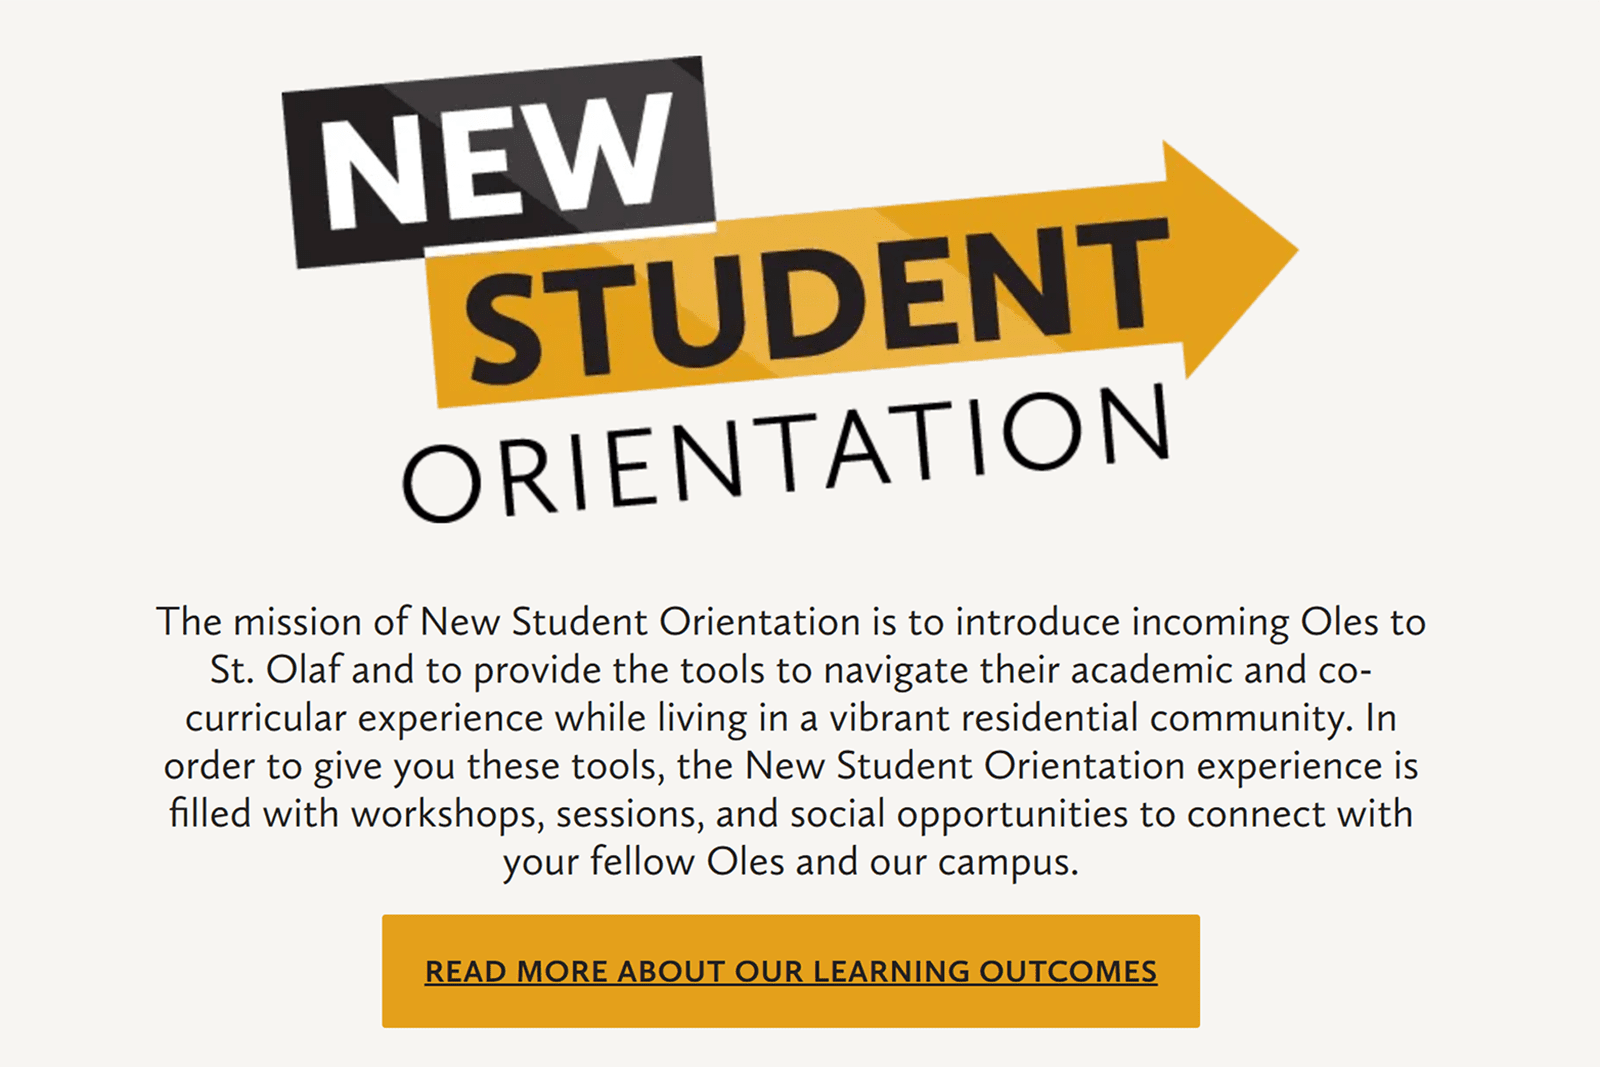 Screenshot of a web page about New Student Orientation.